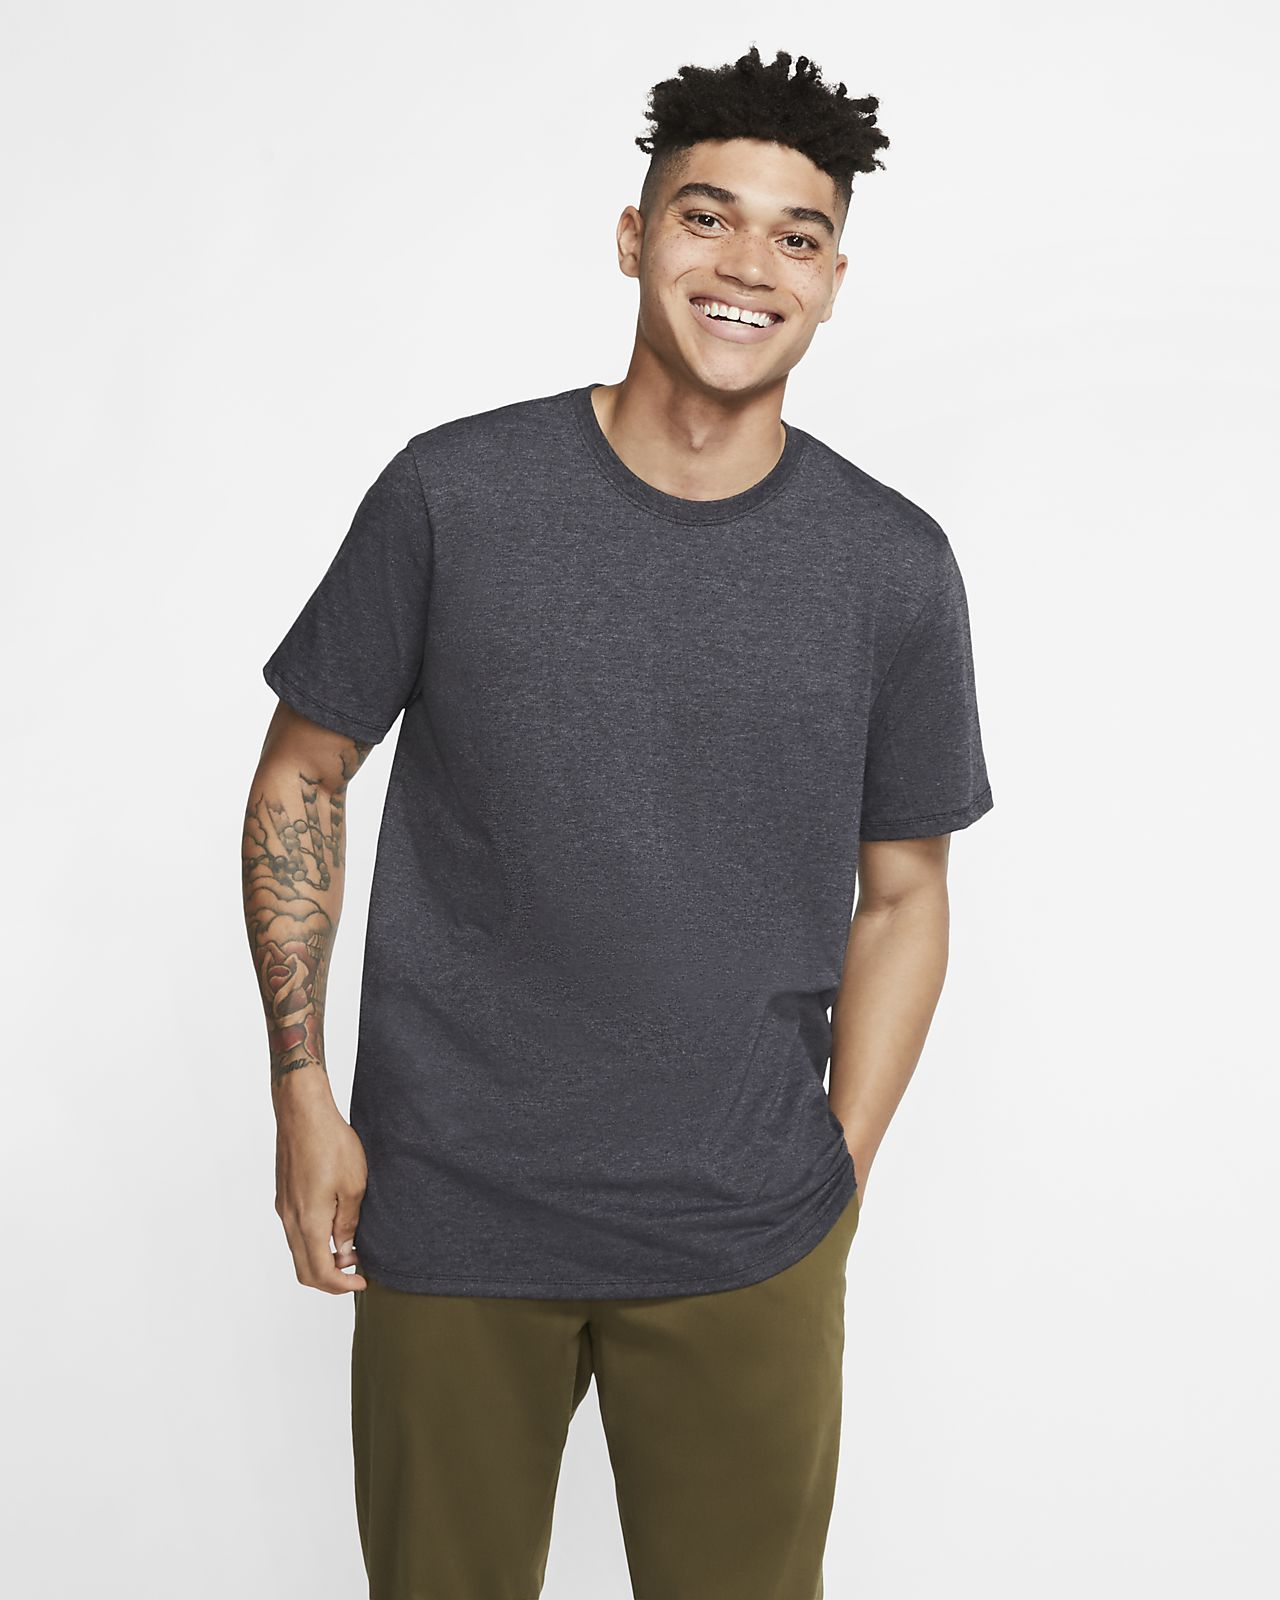 Tee-shirt Hurley Premium Staple pour Homme